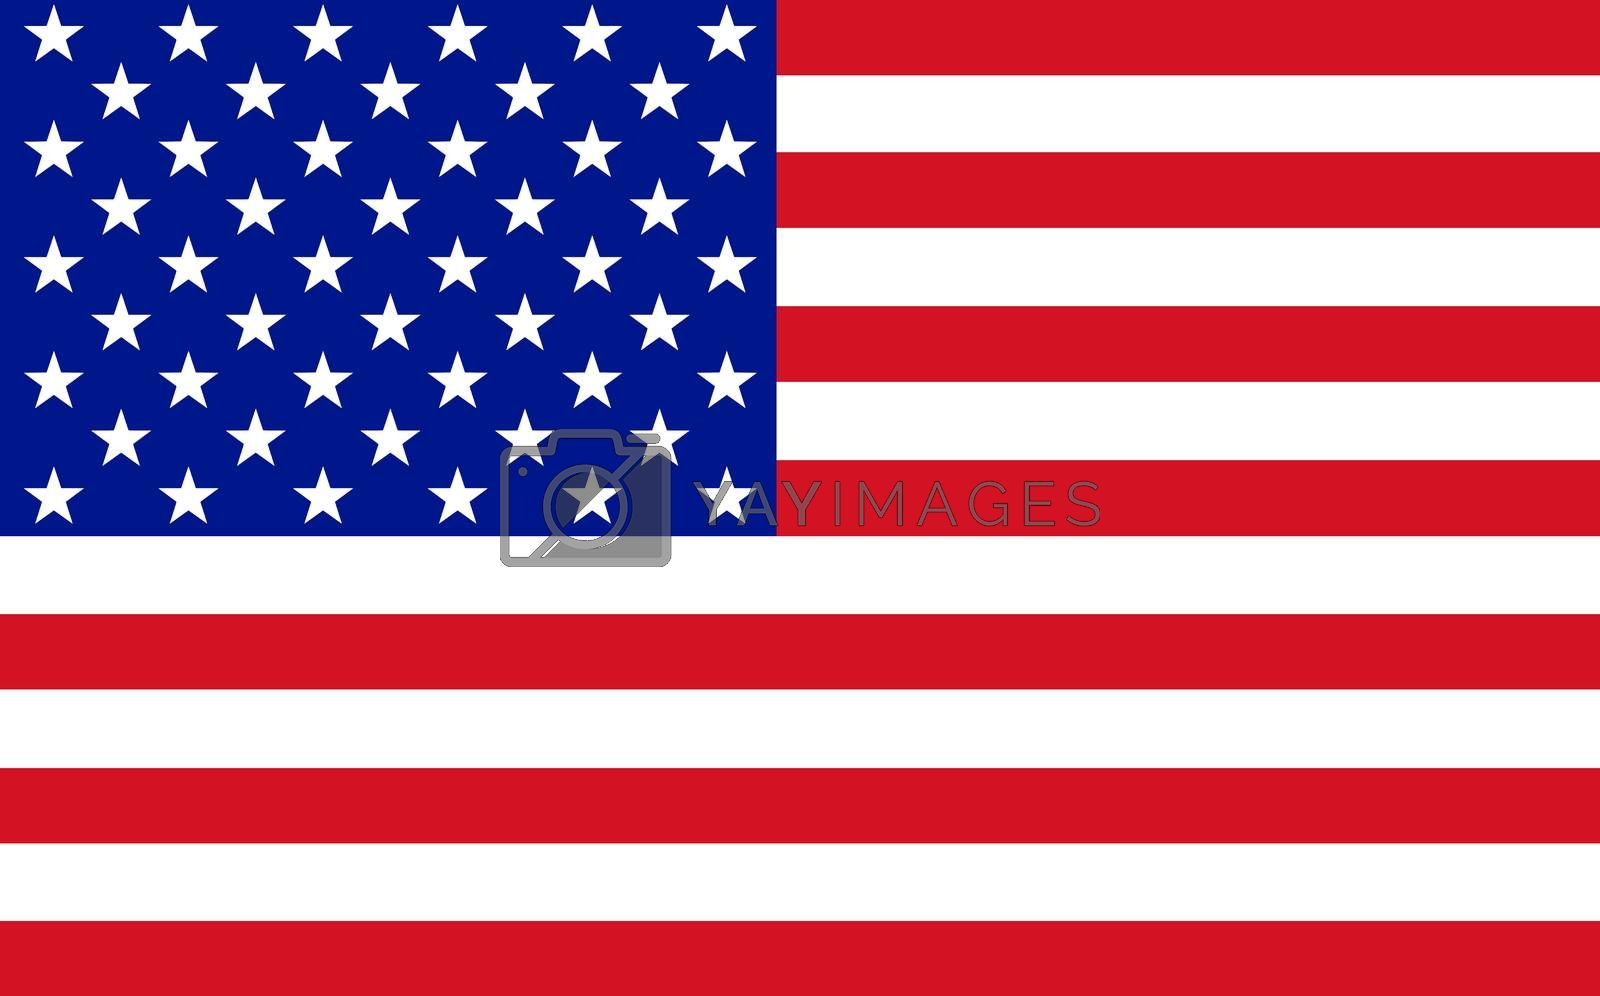 Official flag of USA nation